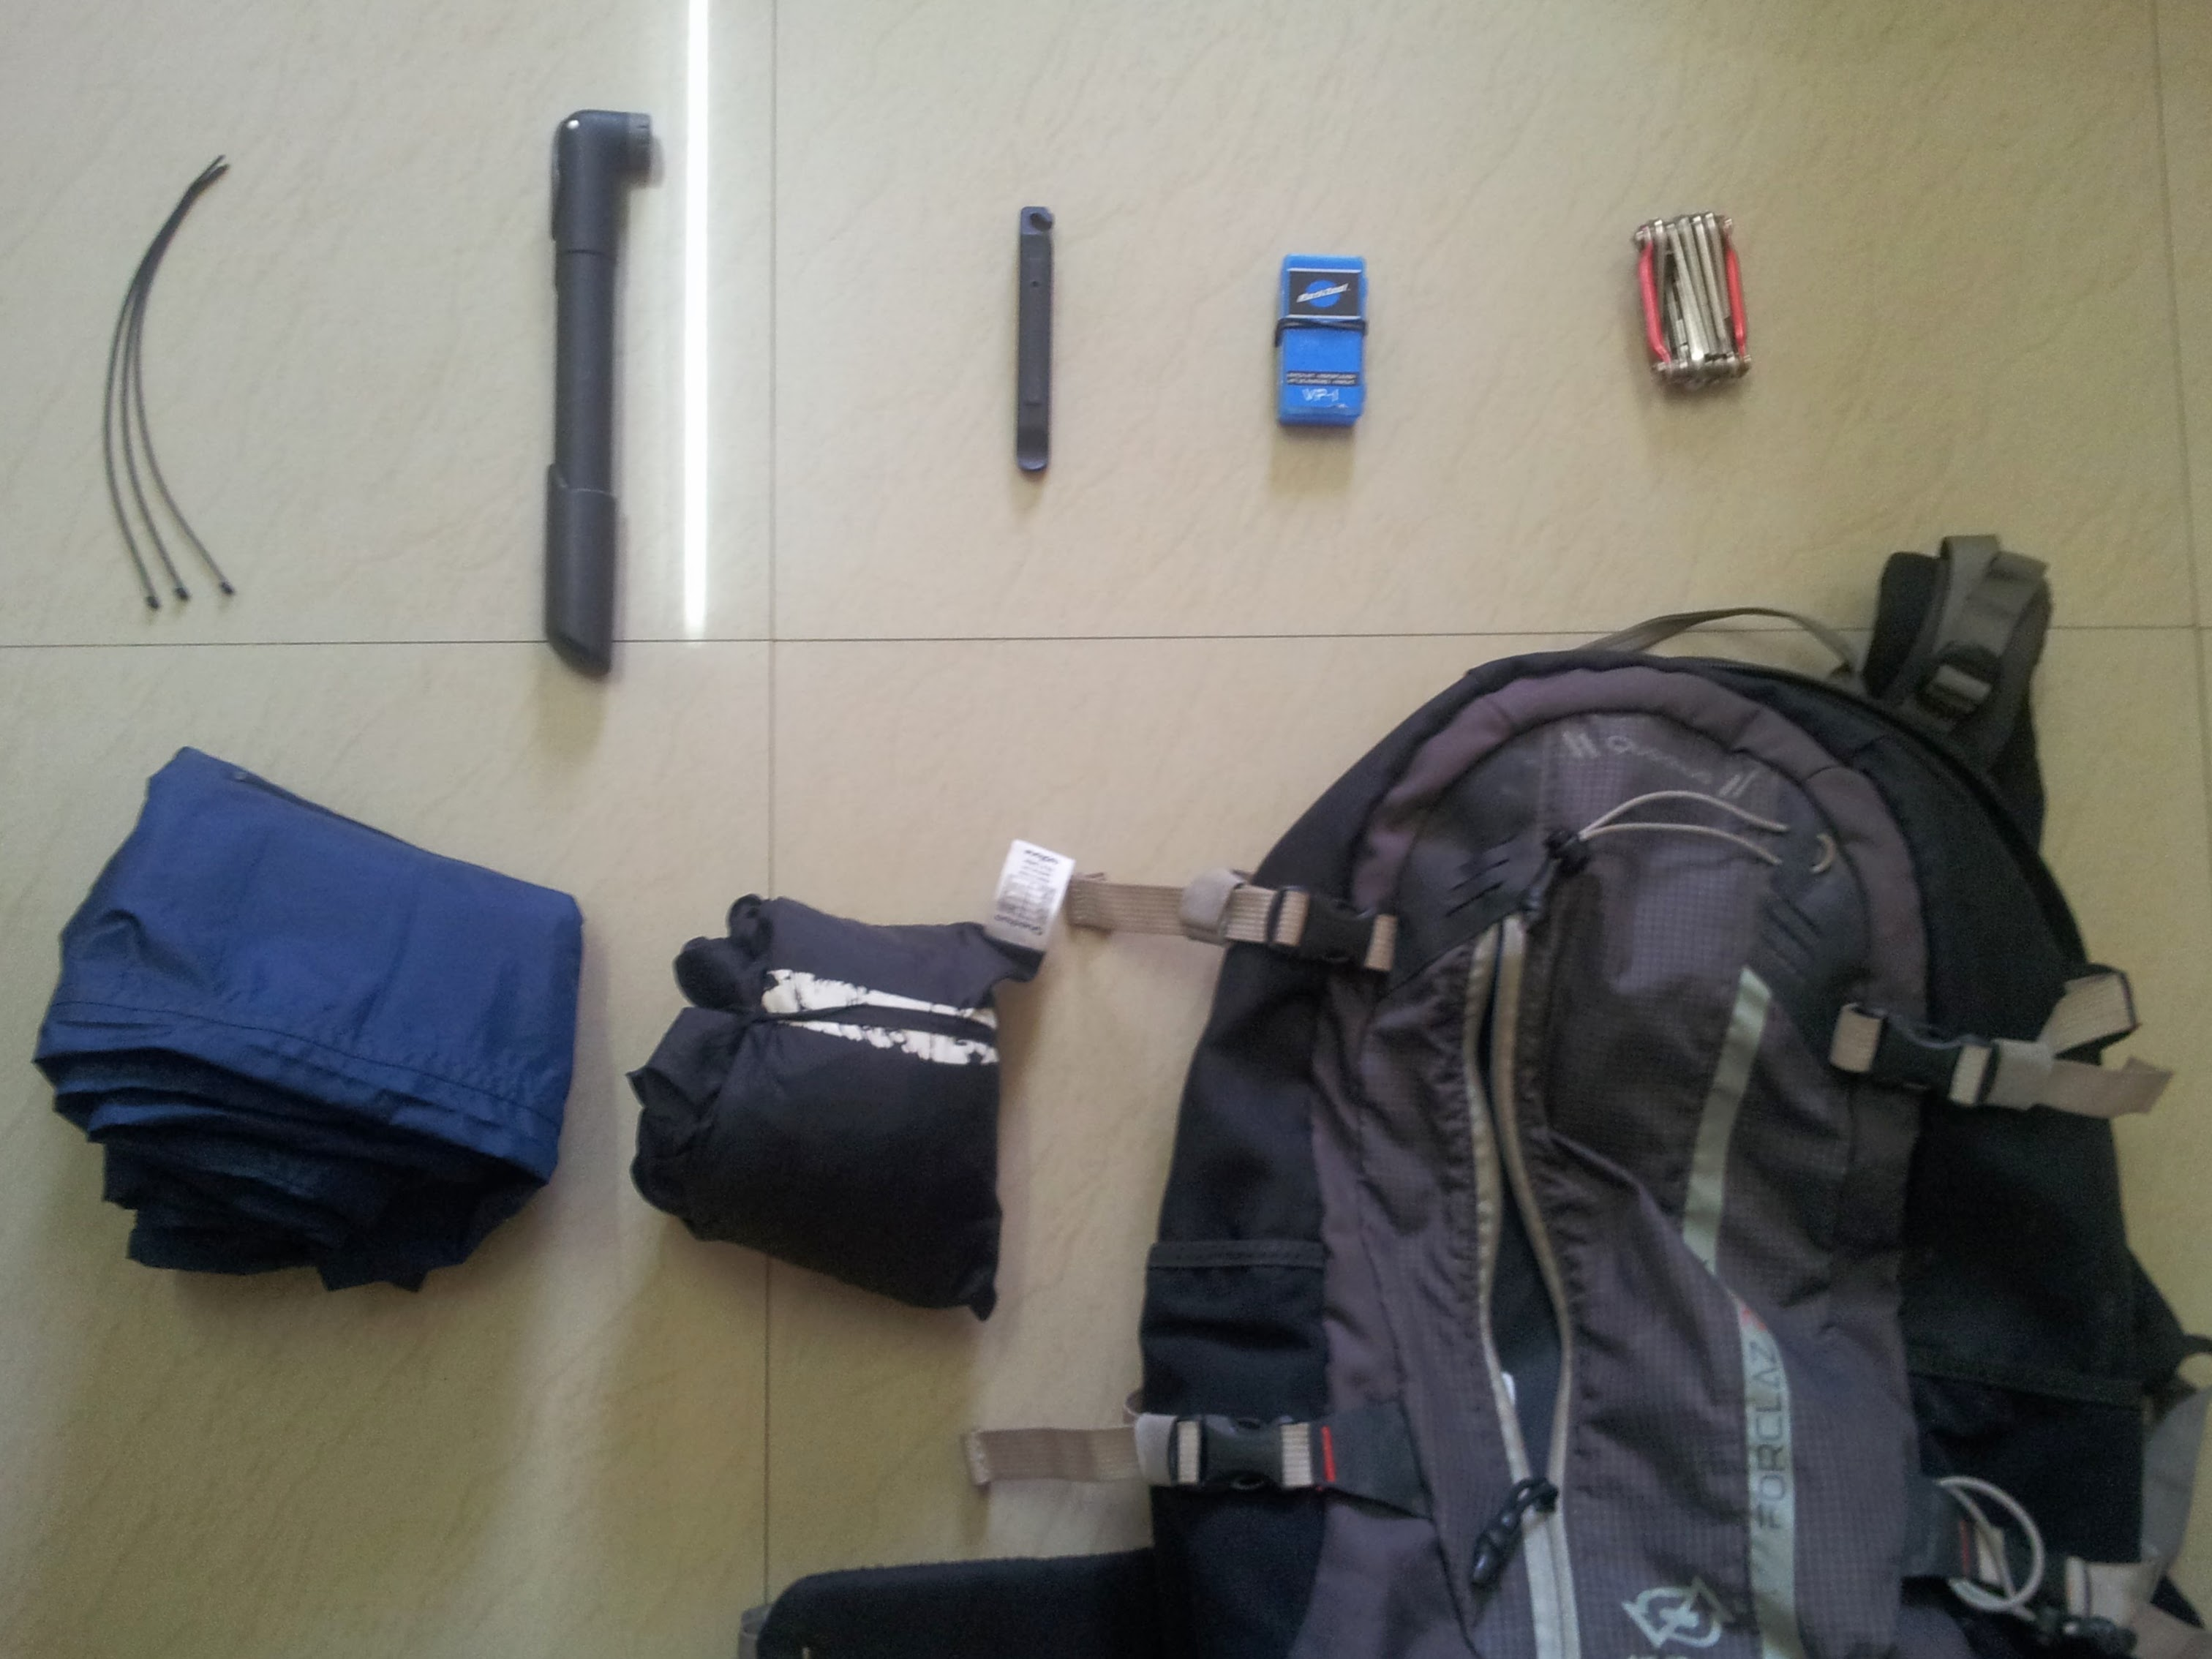 Top L-R: Cable ties, Hand pump, pair of tyre levers, Patch kit, Multitool. Bottom L-R: Rainproof lower trousers, Rainjacket, Backpack. I do not carry a spare tyre as I have a shop right beside my office in case I need to get one. The commute distance is less, too.